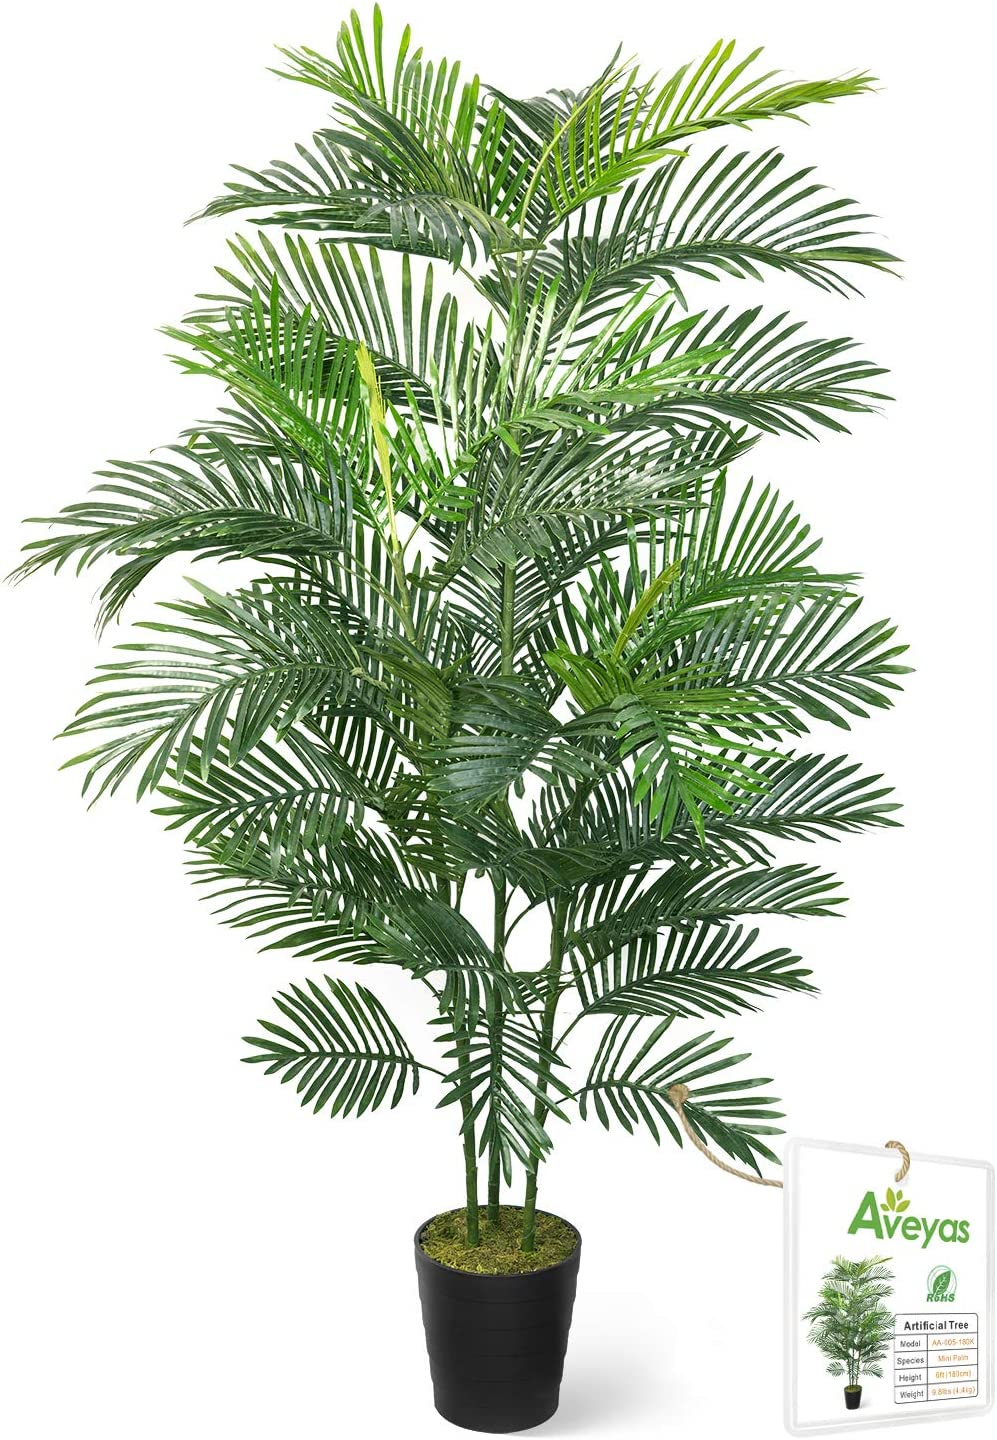 Aveyas 6ft Artificial Kentia Palm Silk Tree in Plastic Nursery Pot, Fake Tropical Plant for Office House Living Room Home Decor (Indoor/Outdoor)